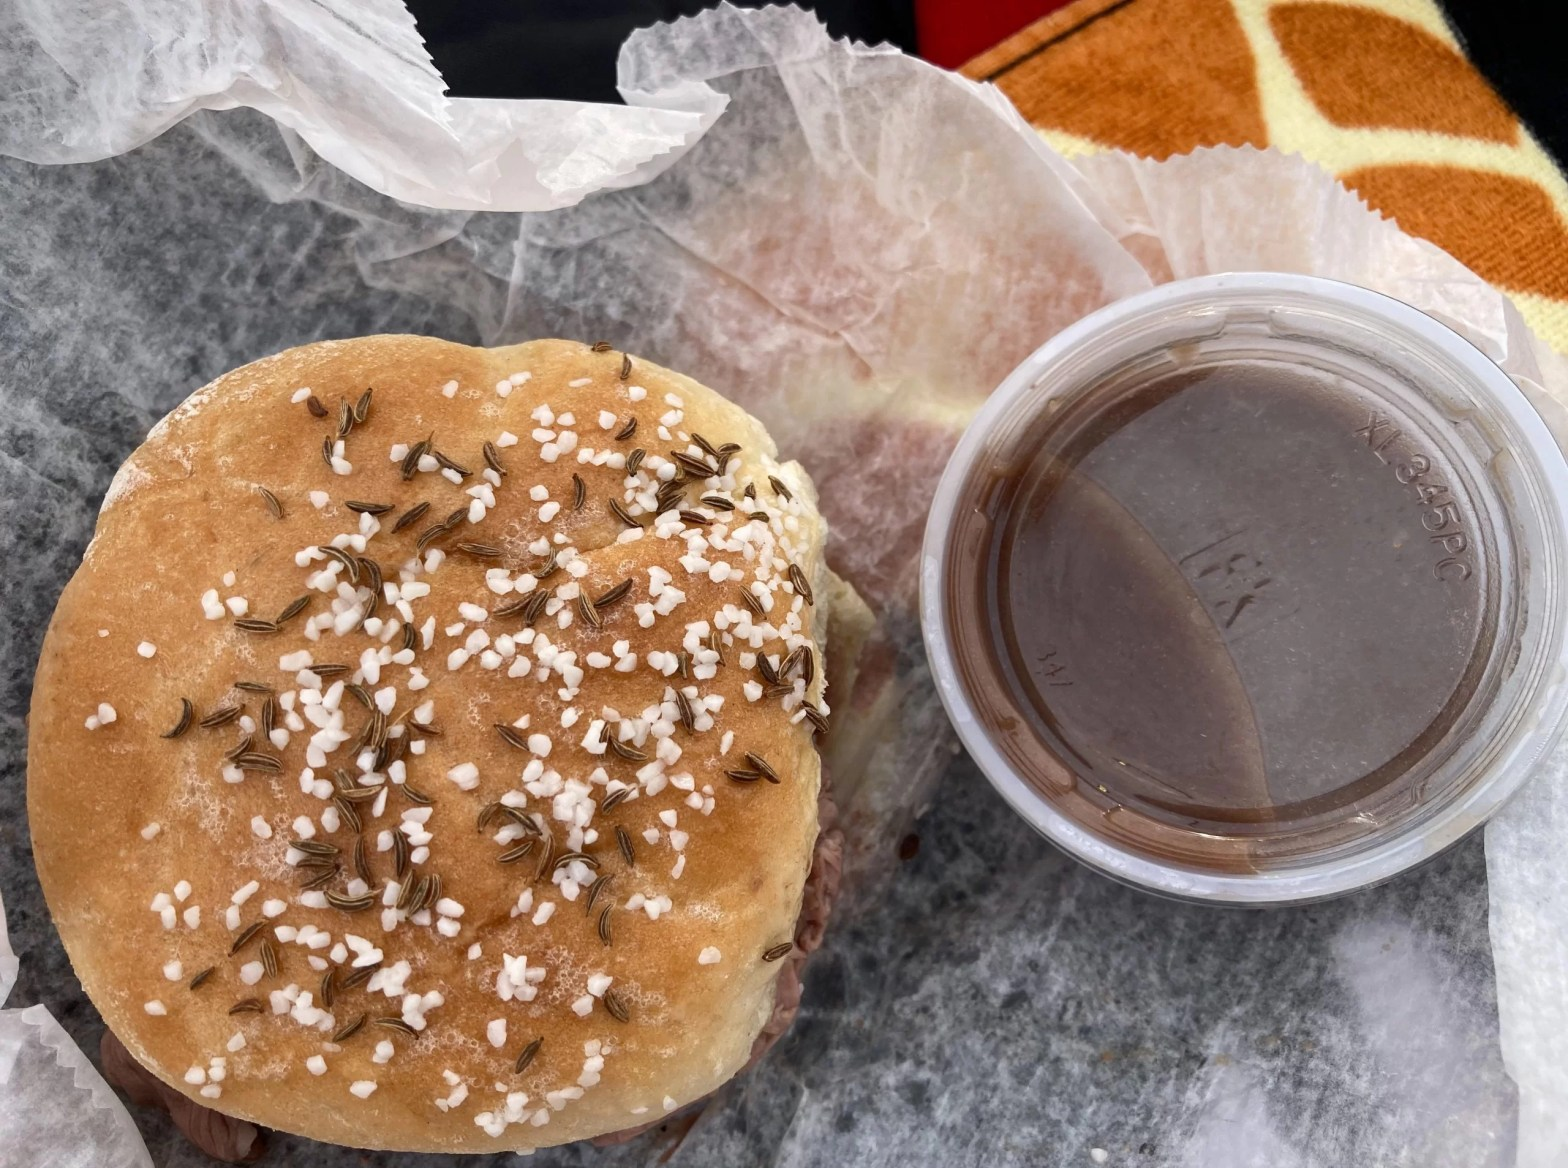 Kummelweck roll with roast beef and au jus on wax paper from Adri